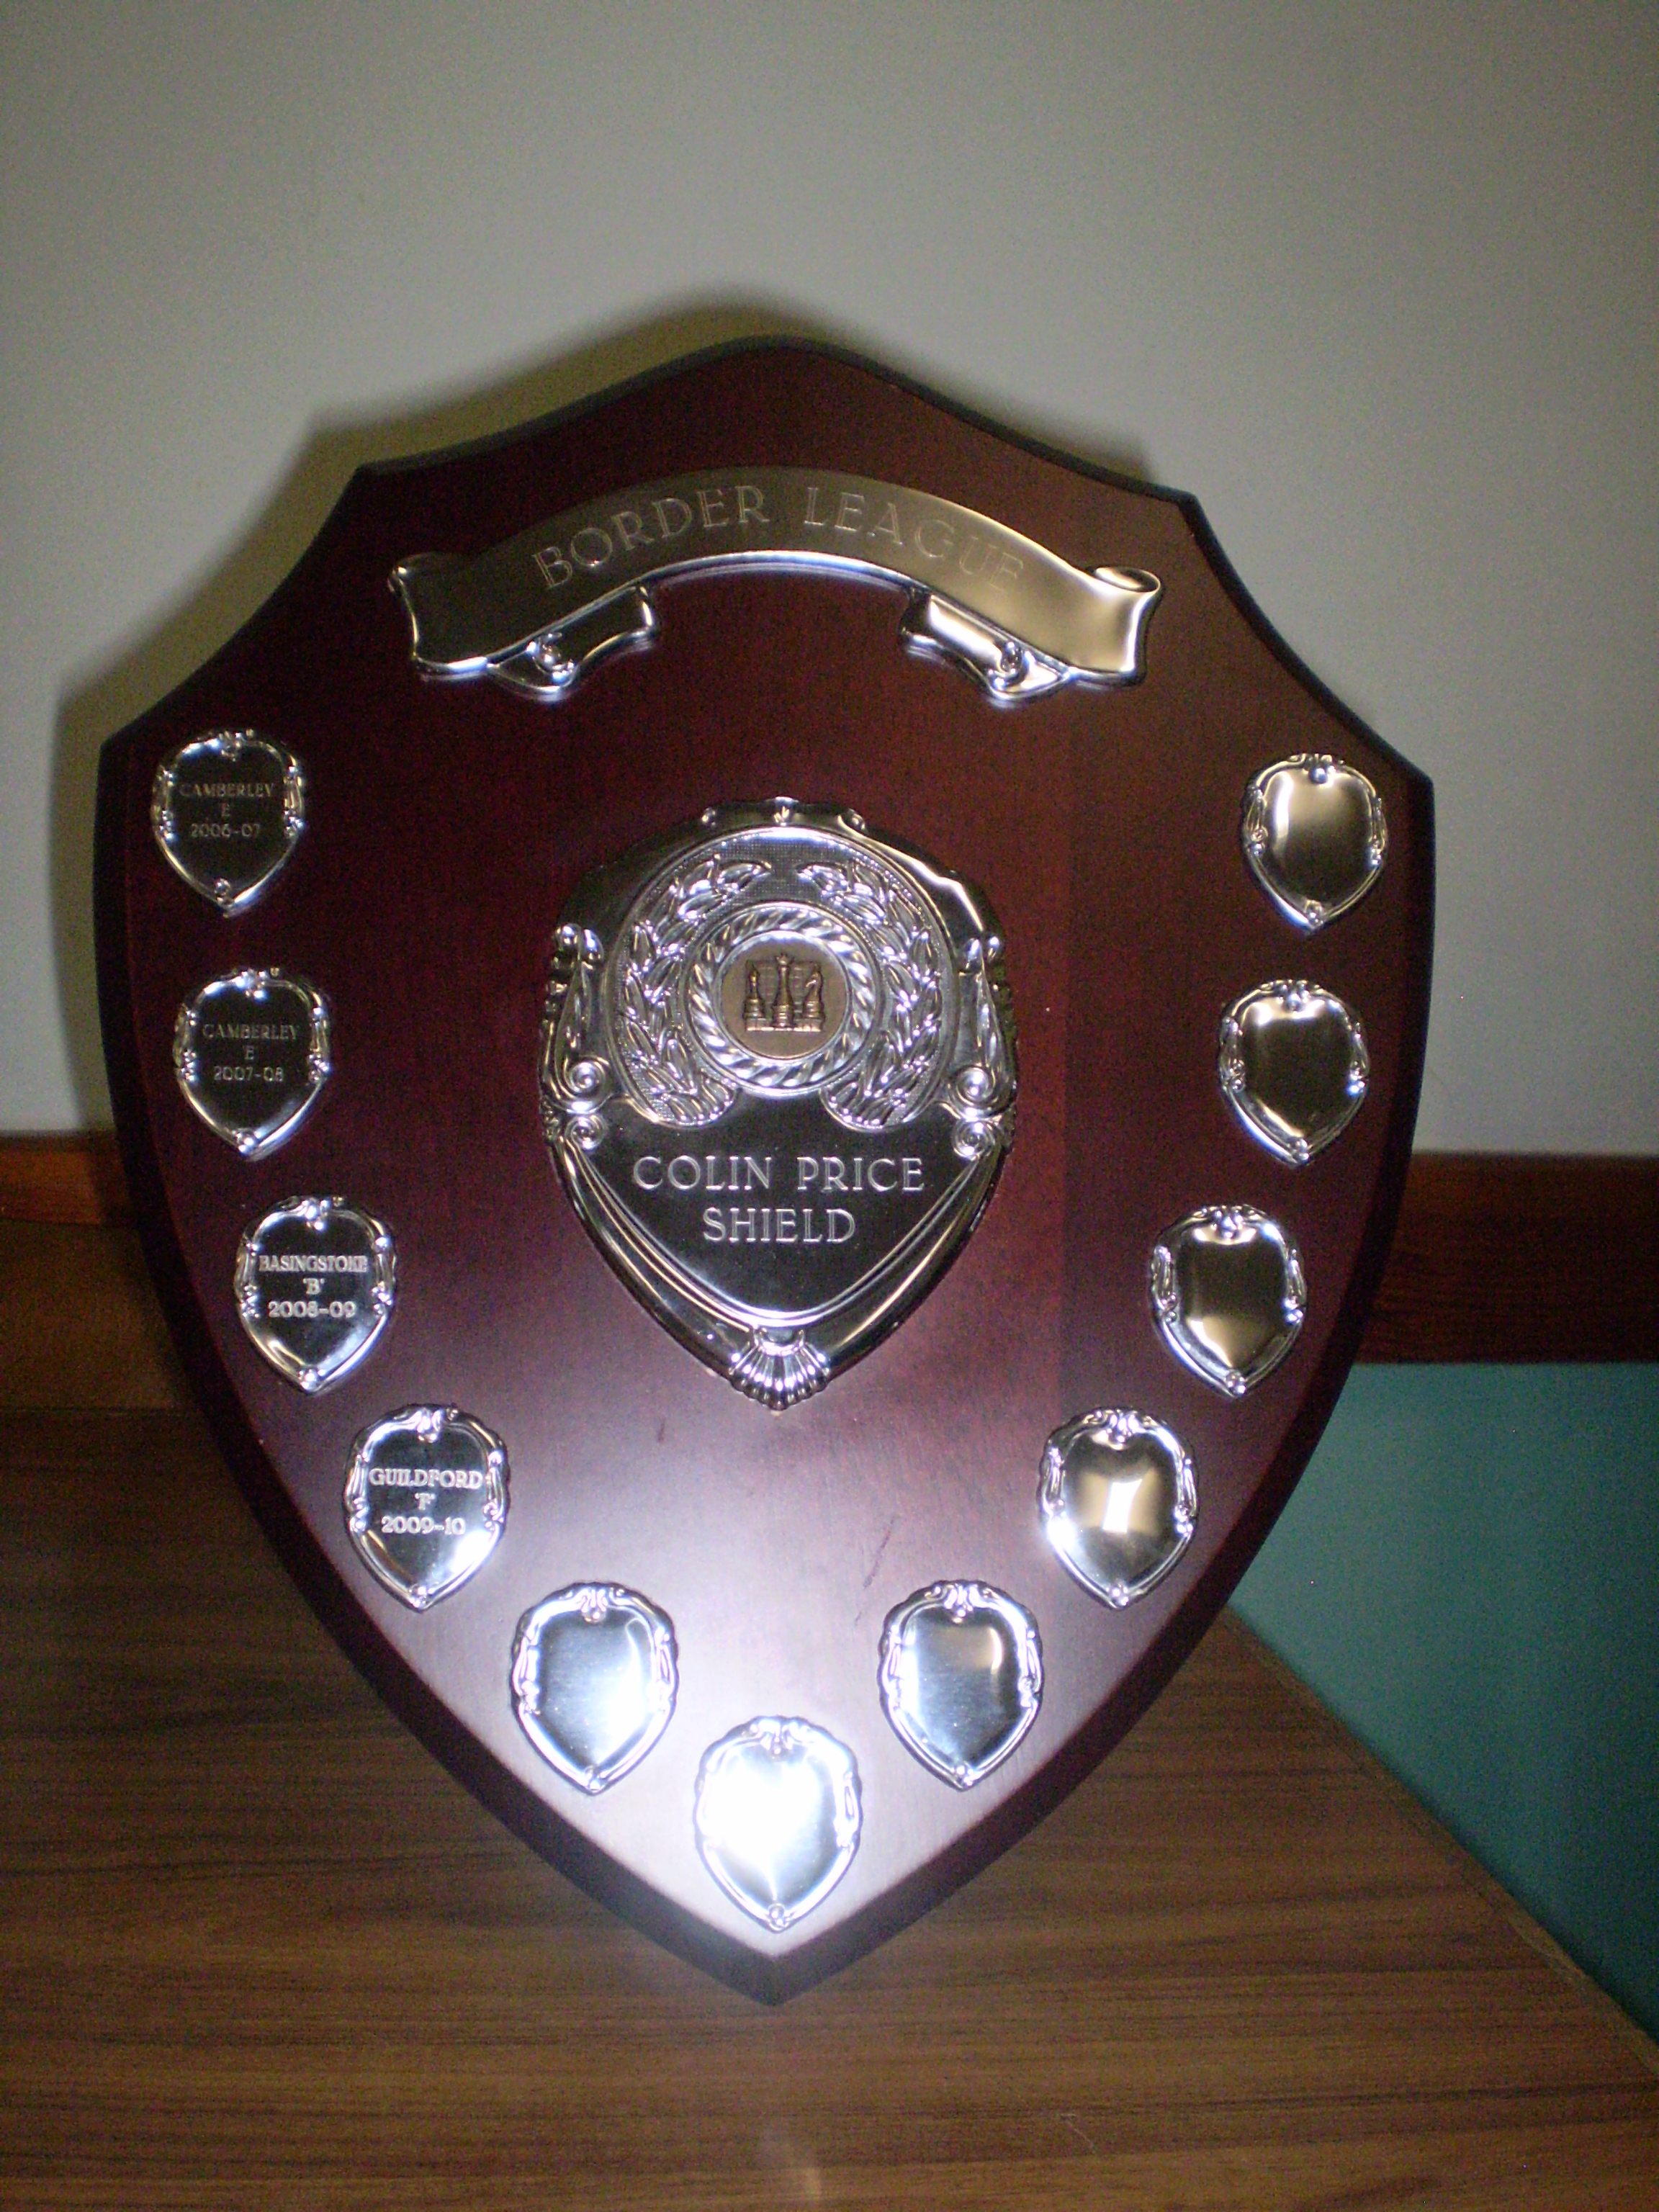 Colin Price Shield